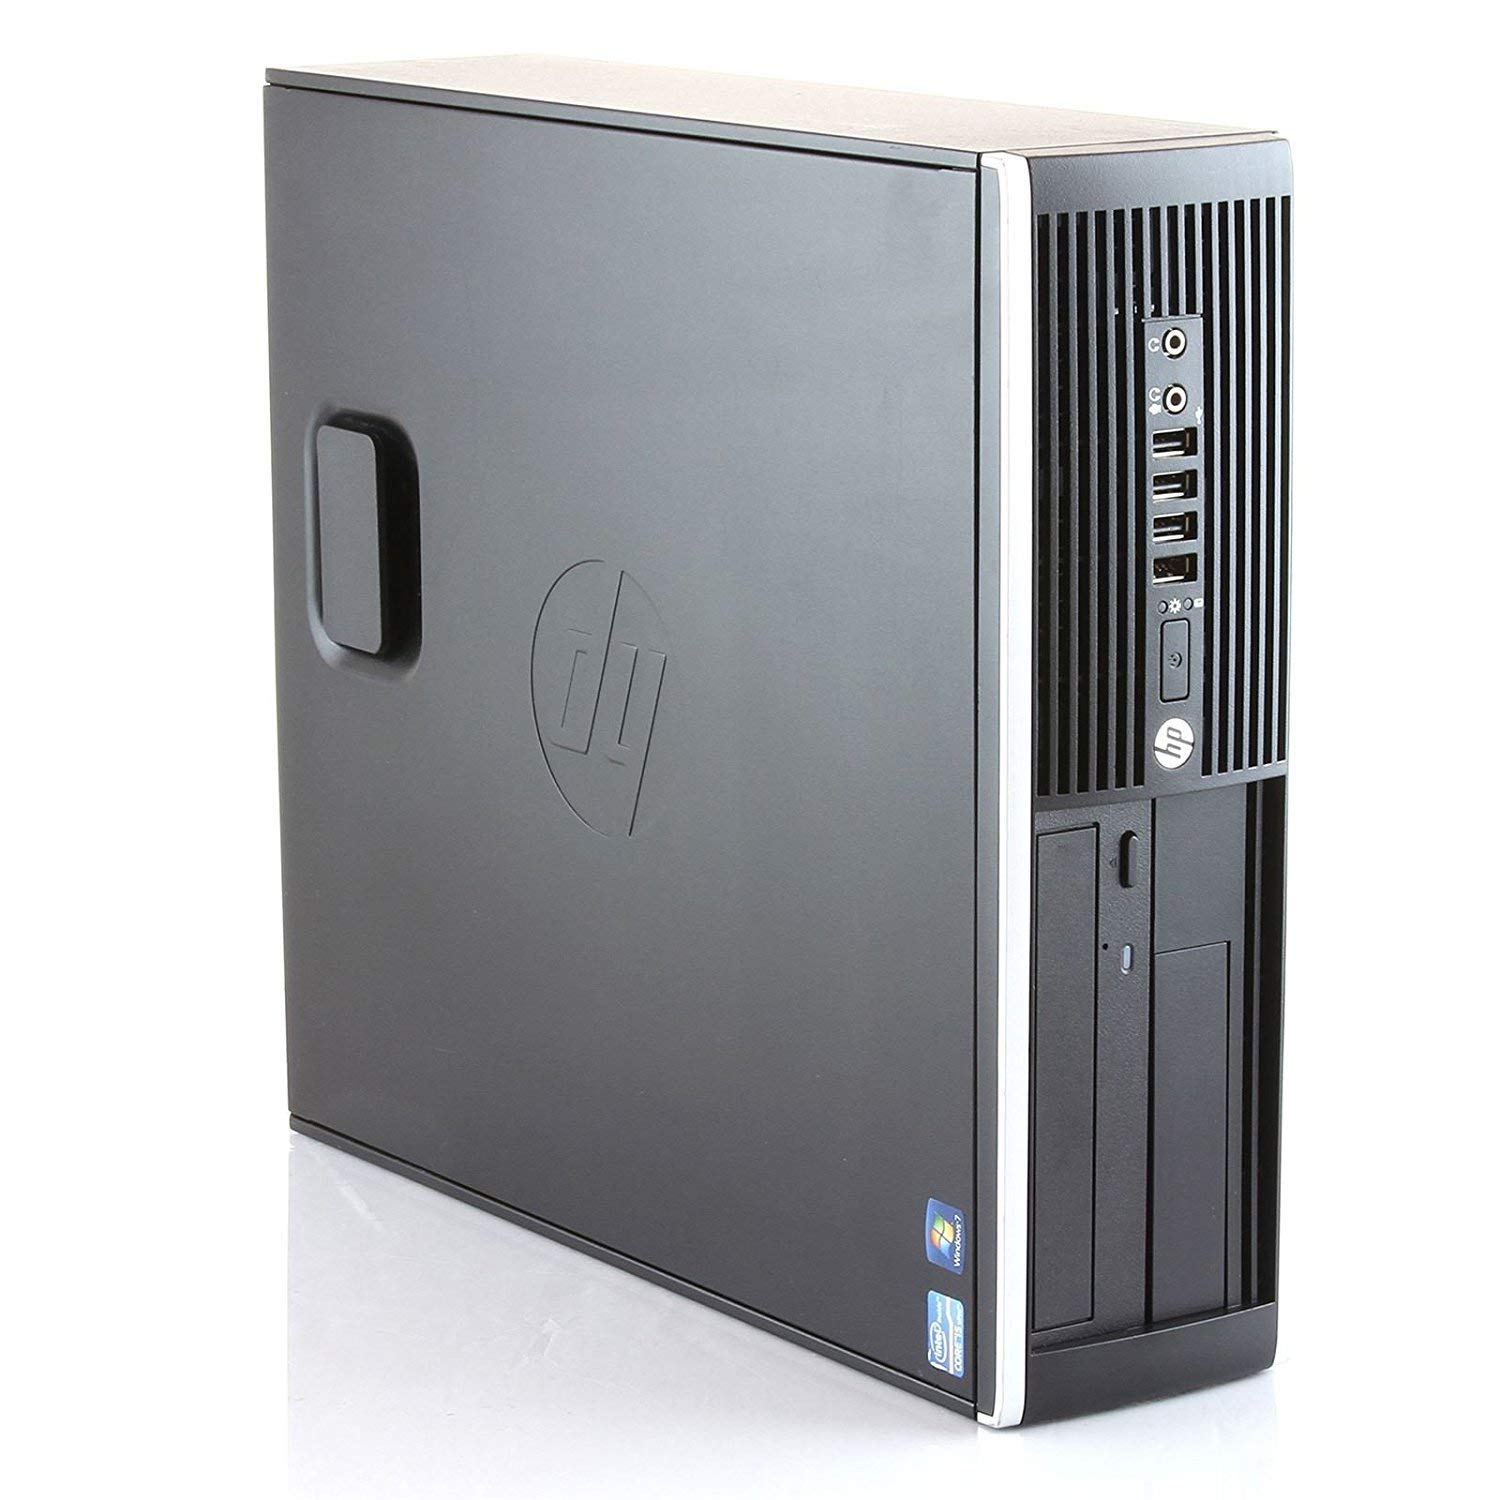 HP Elite 8300-PC-desktop (Intel I5-3470, 3,2, DVD, 8 Hard GB RAM, SSD 960 Hard GB, WIFI PCI Win10PRO) (REFURBISHED)